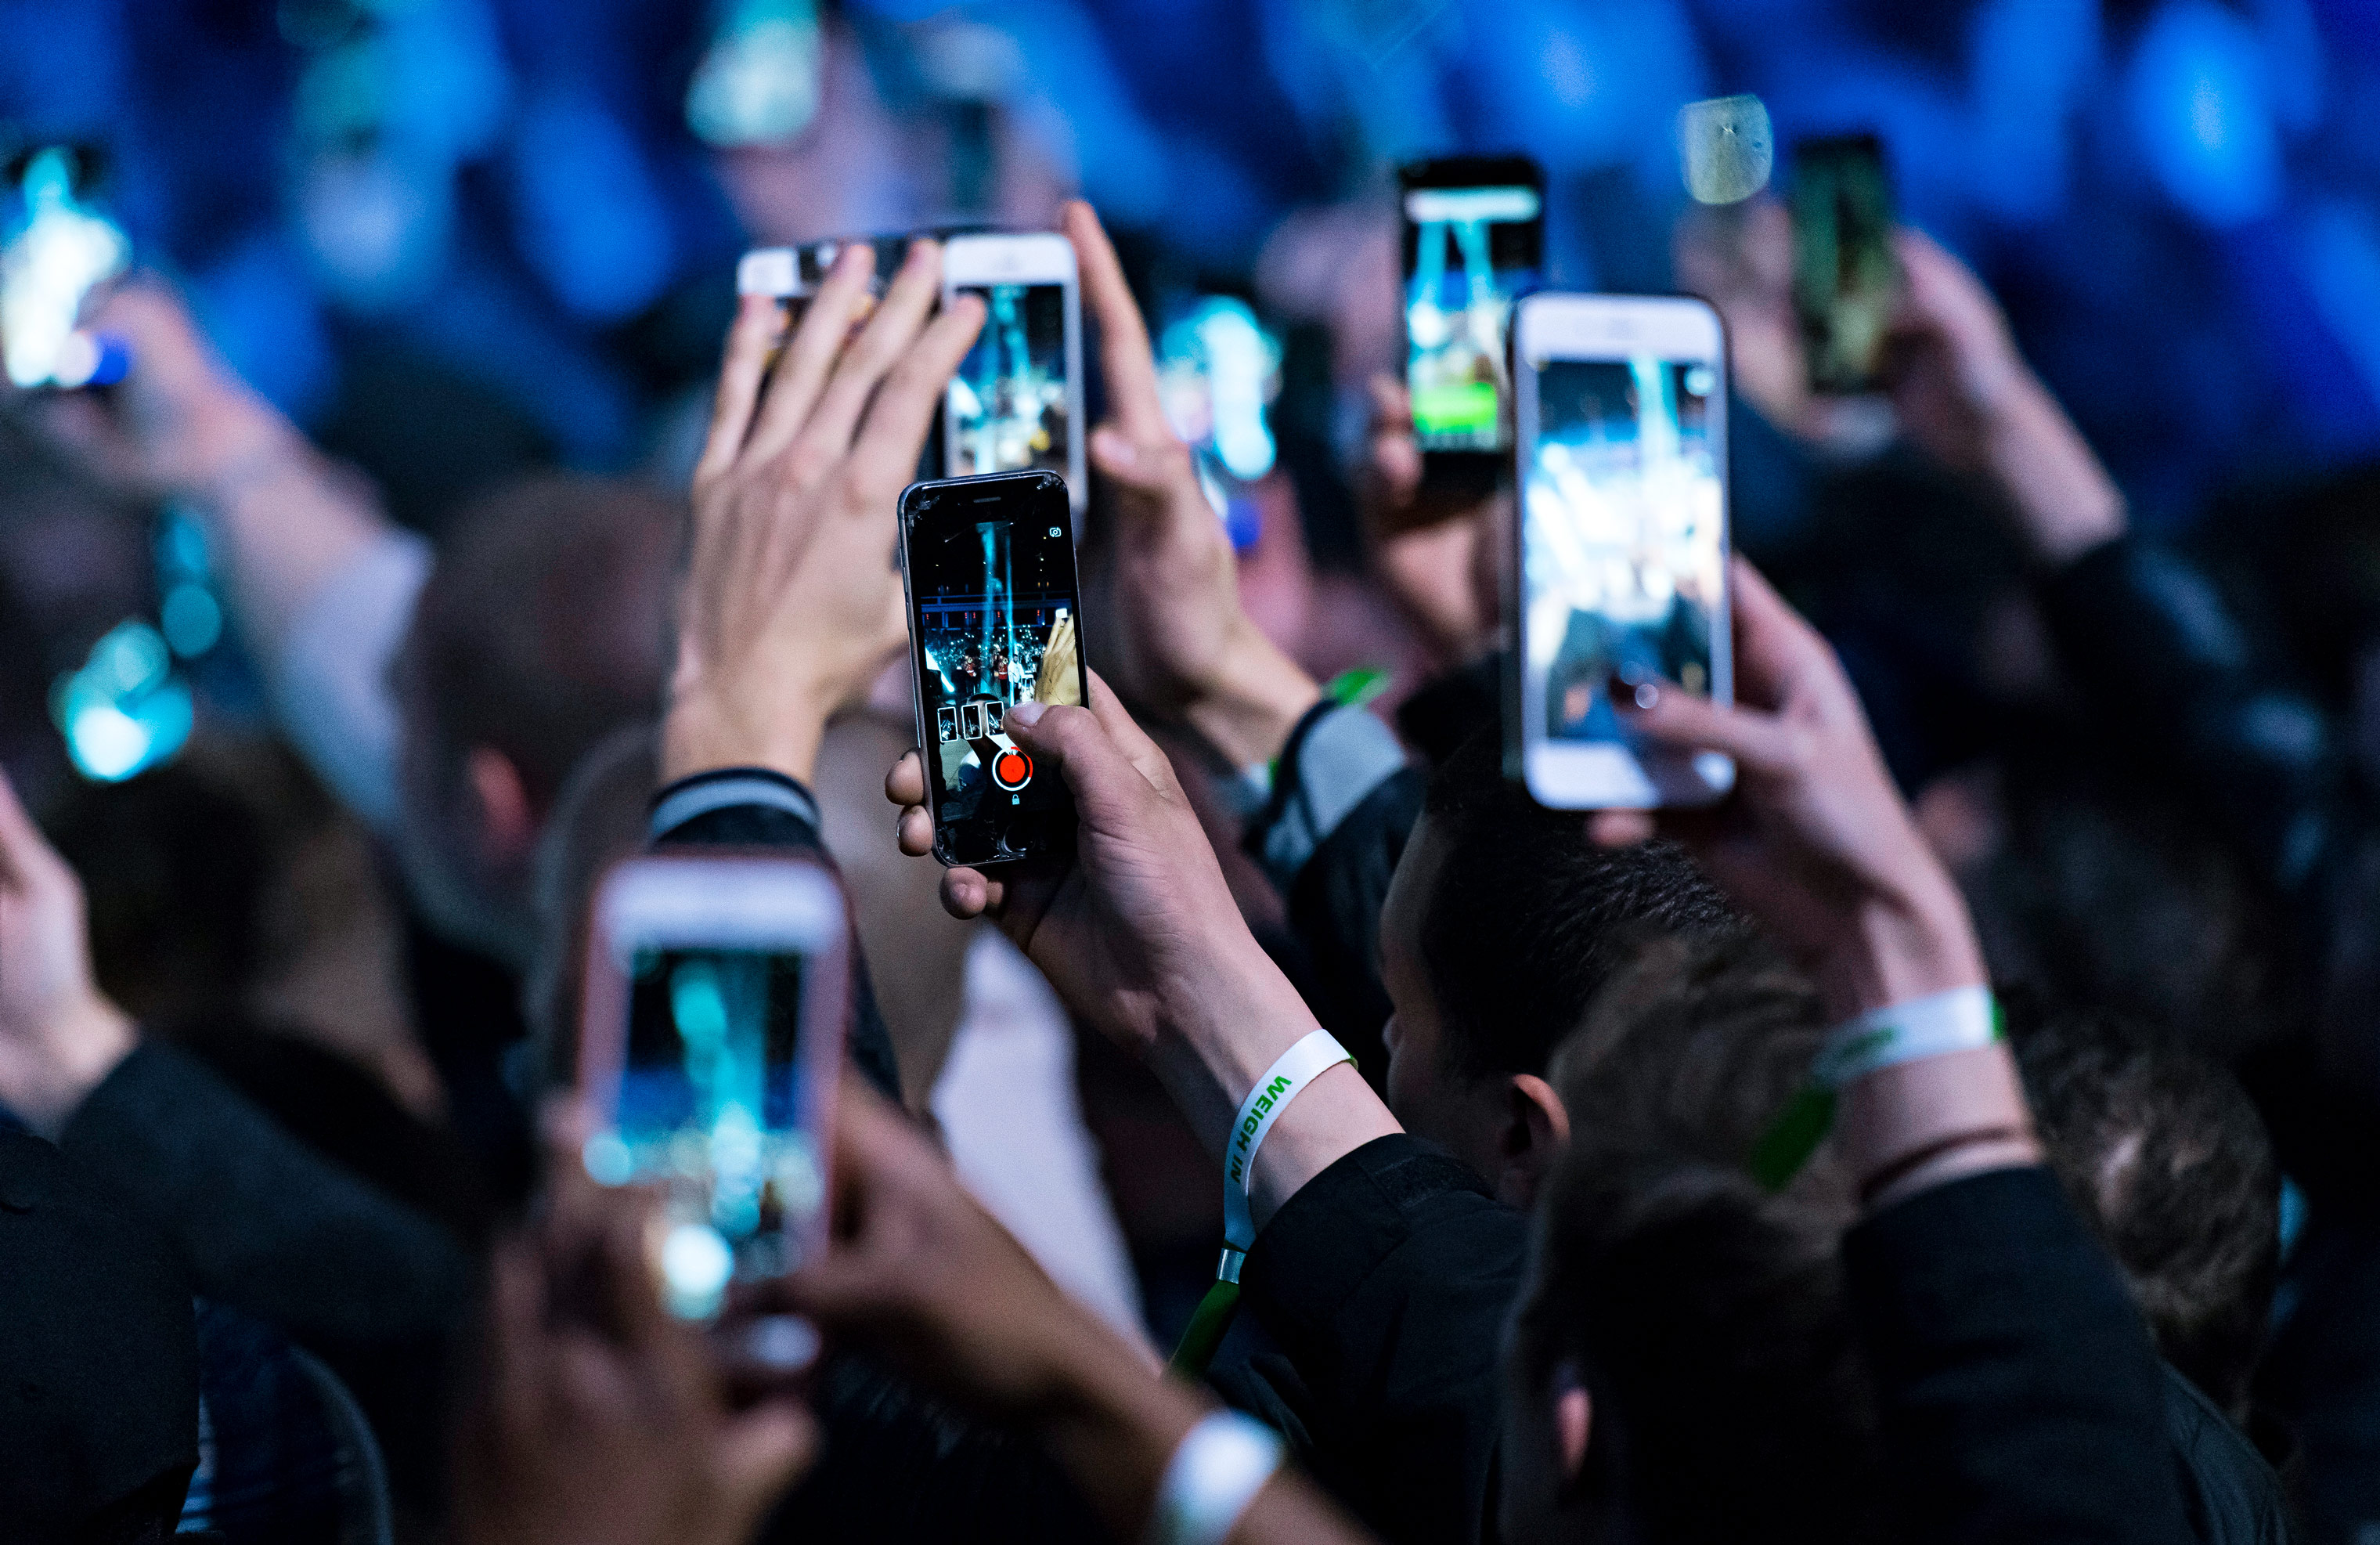 Spectators use their Apple iPhones at an event in Cardiff, United Kingdom.